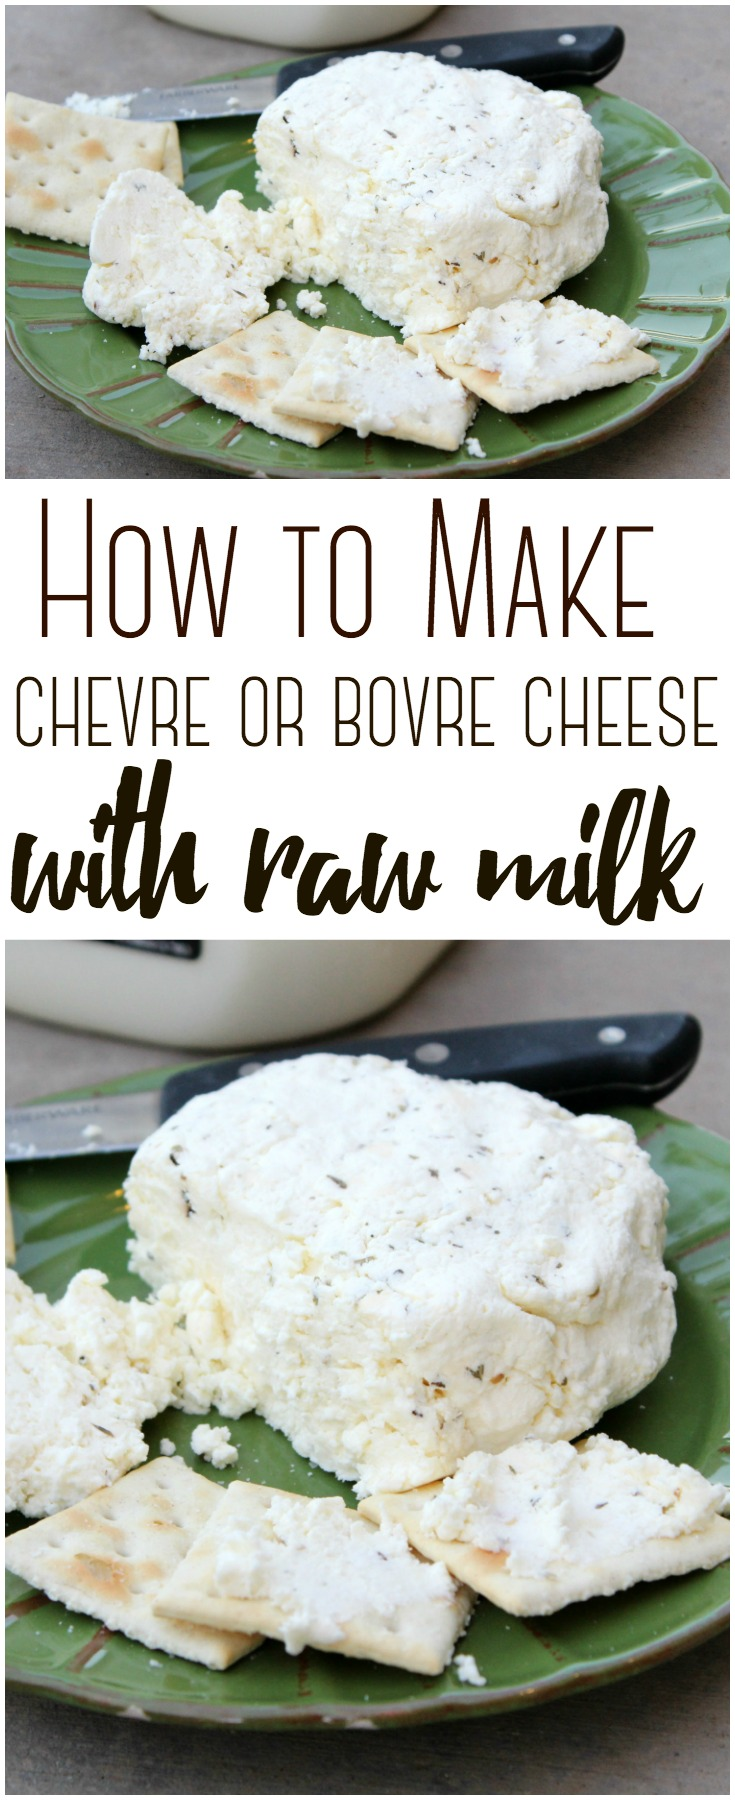 Bovre Cheese (much like homemade chevre cheese is super delicious - and easy to make at home with a gallon of raw cow milk.